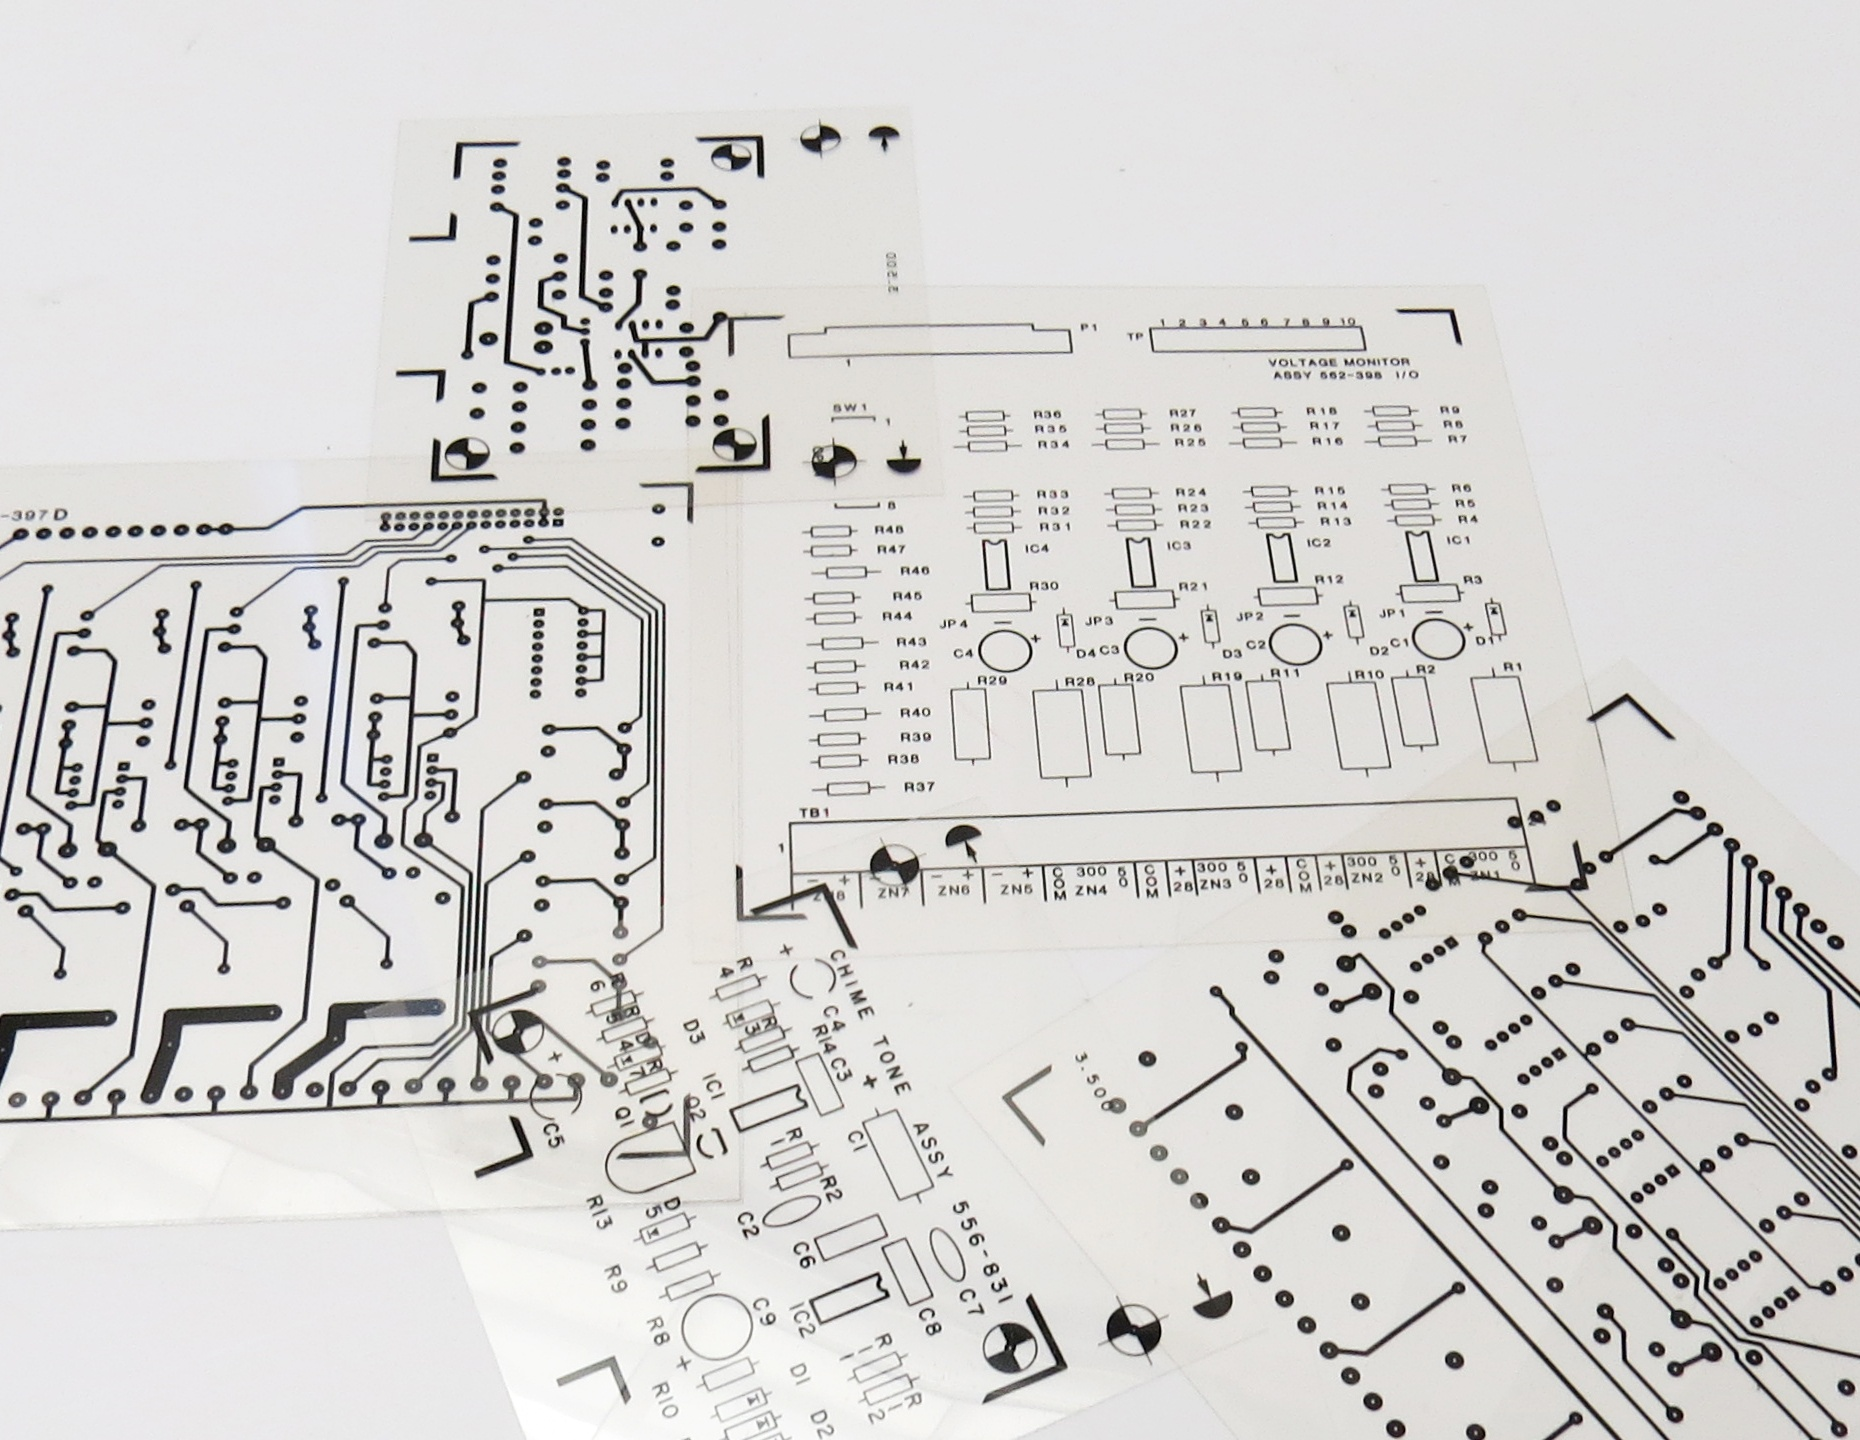 printed circuit board manufacturing  then and now